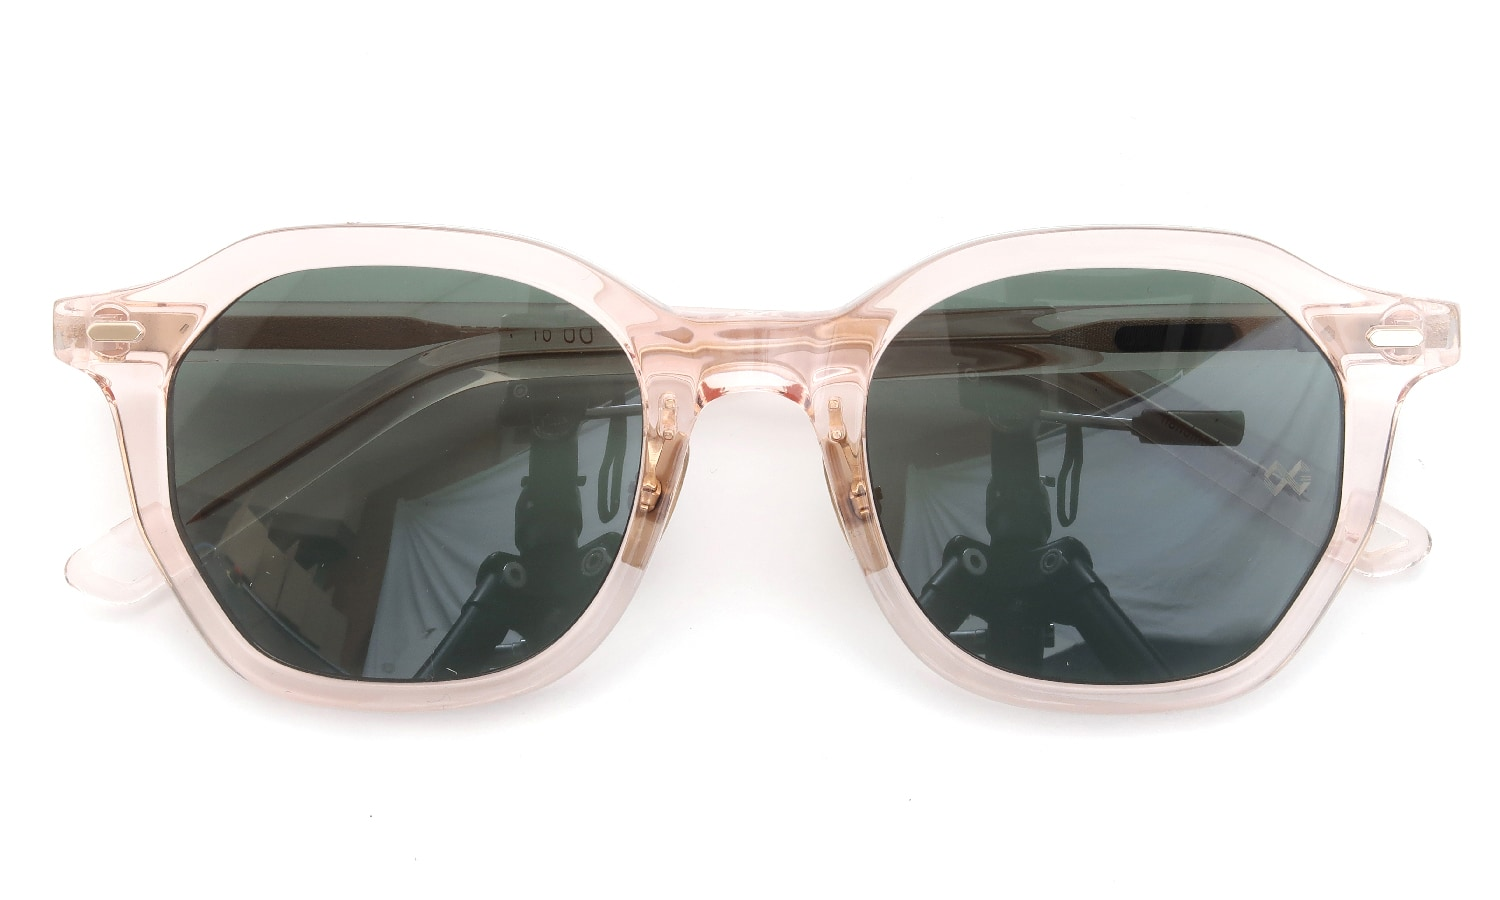 OG × OLIVER GOLDSMITH Re:BETSY 49 SG リ:ベッツィ 4